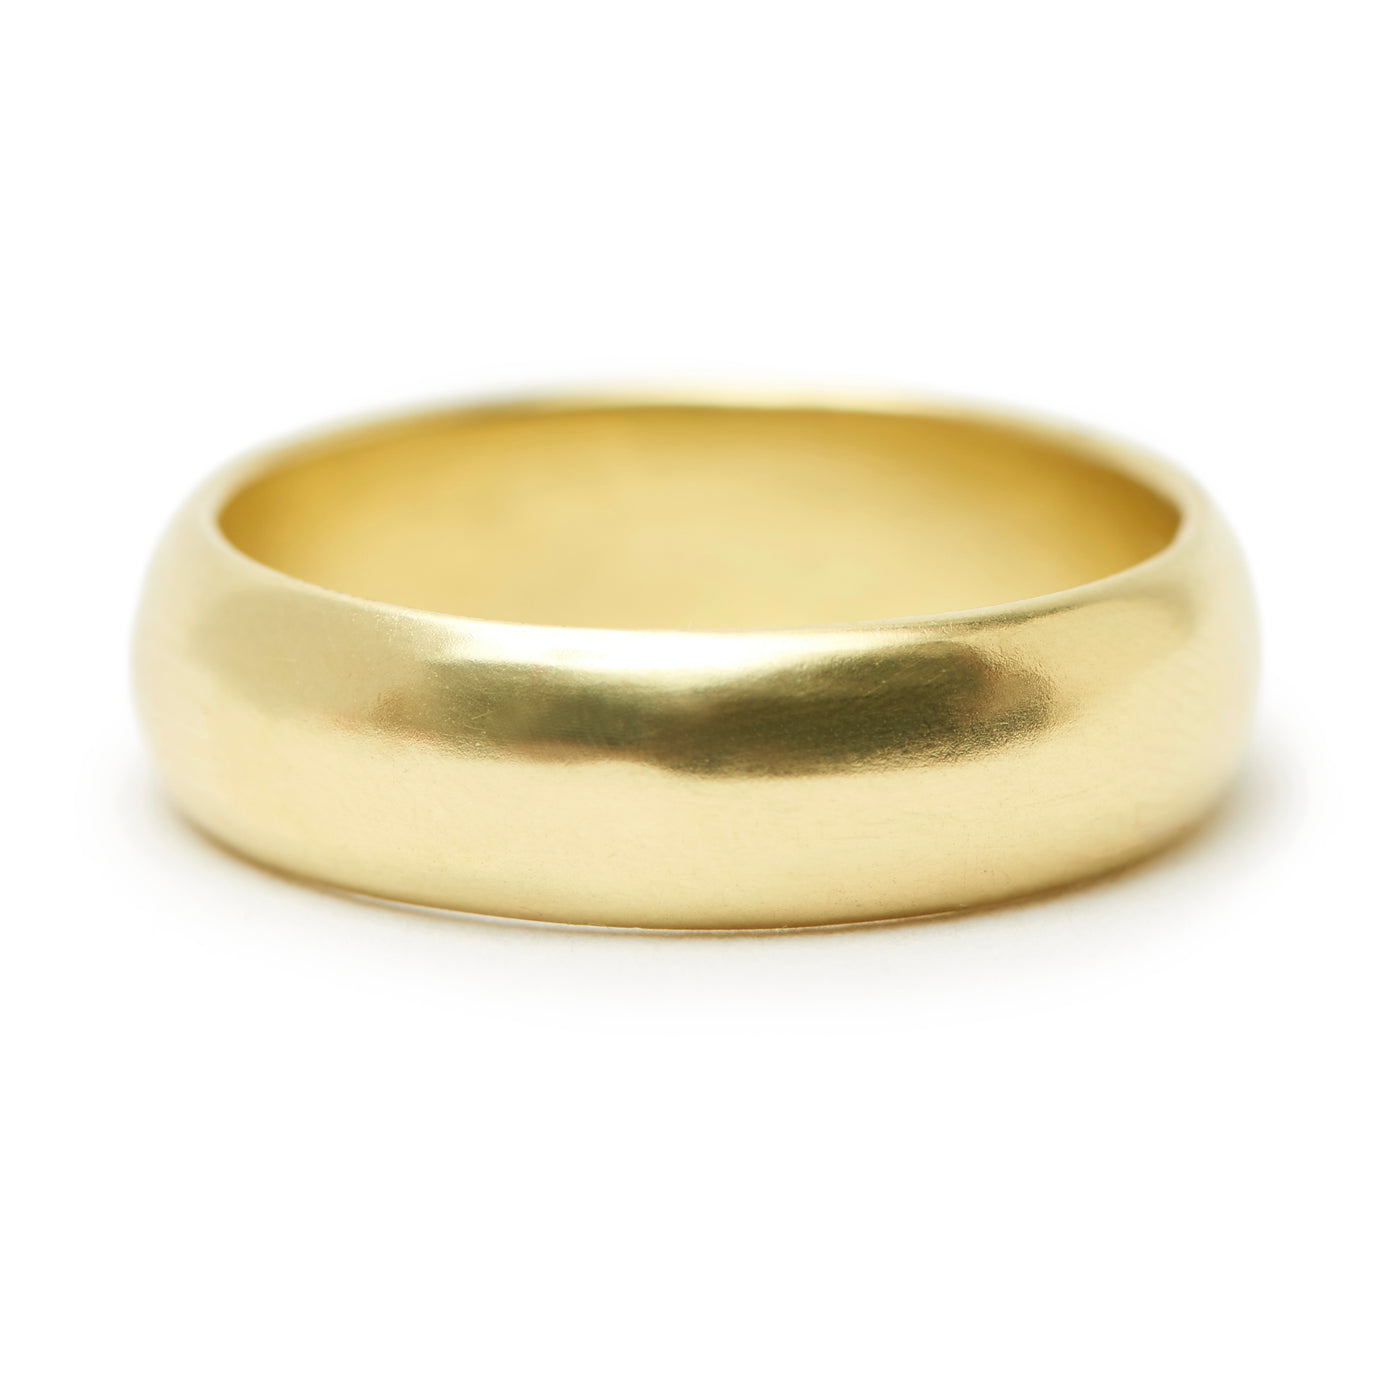 rounded gold band #3